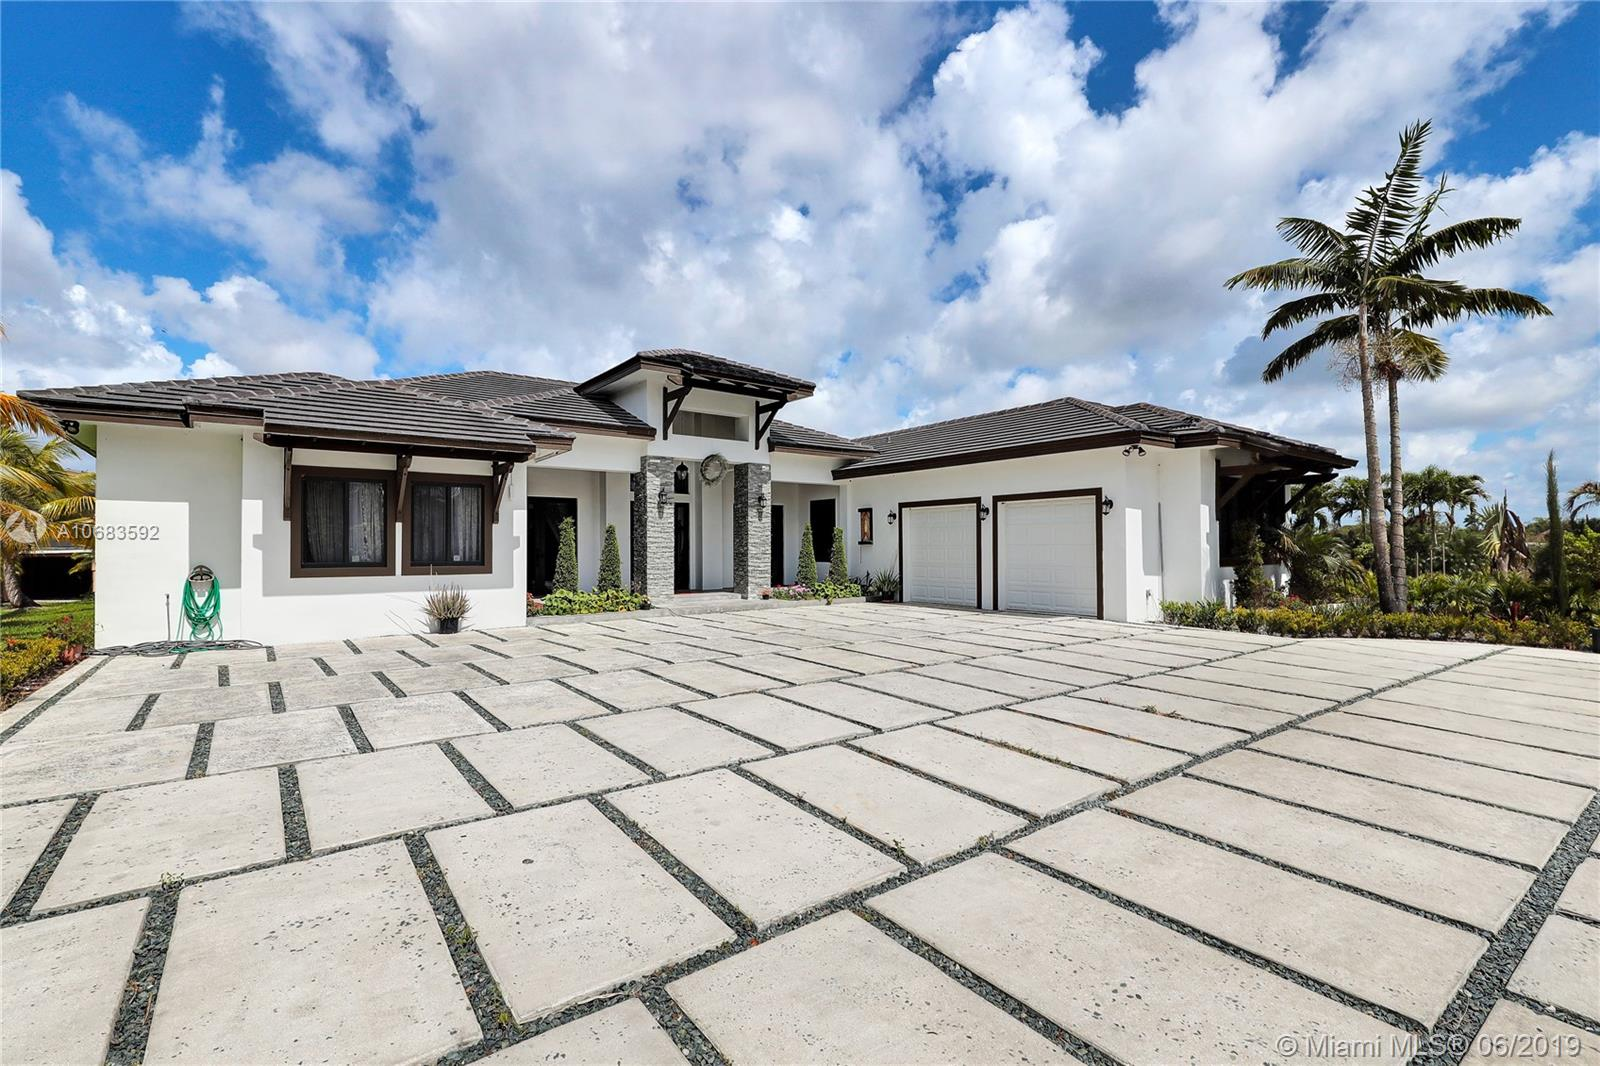 26820 S W 187th Ave  For Sale A10683592, FL